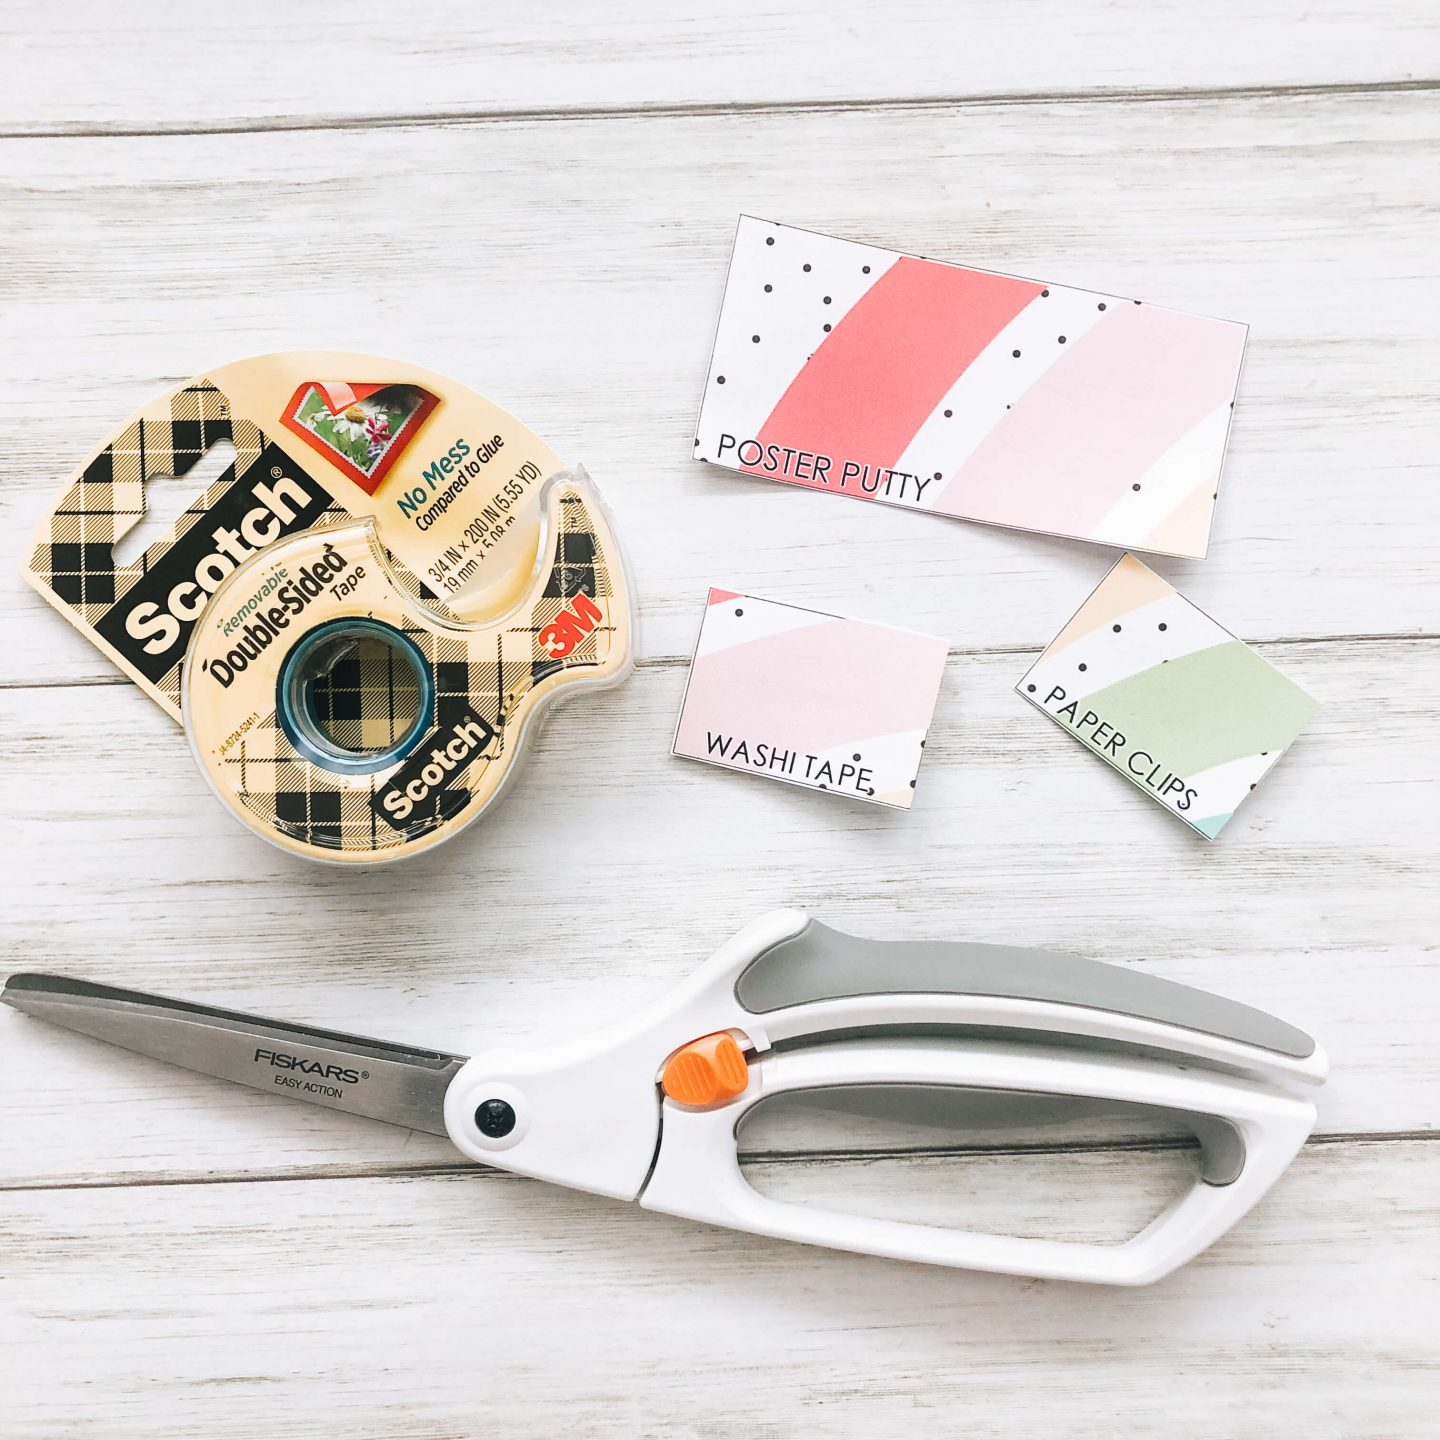 Supplies needed to create your own teacher toolbox for your classroom. Supplies needed include scissors, double sided tape and drawer labels.